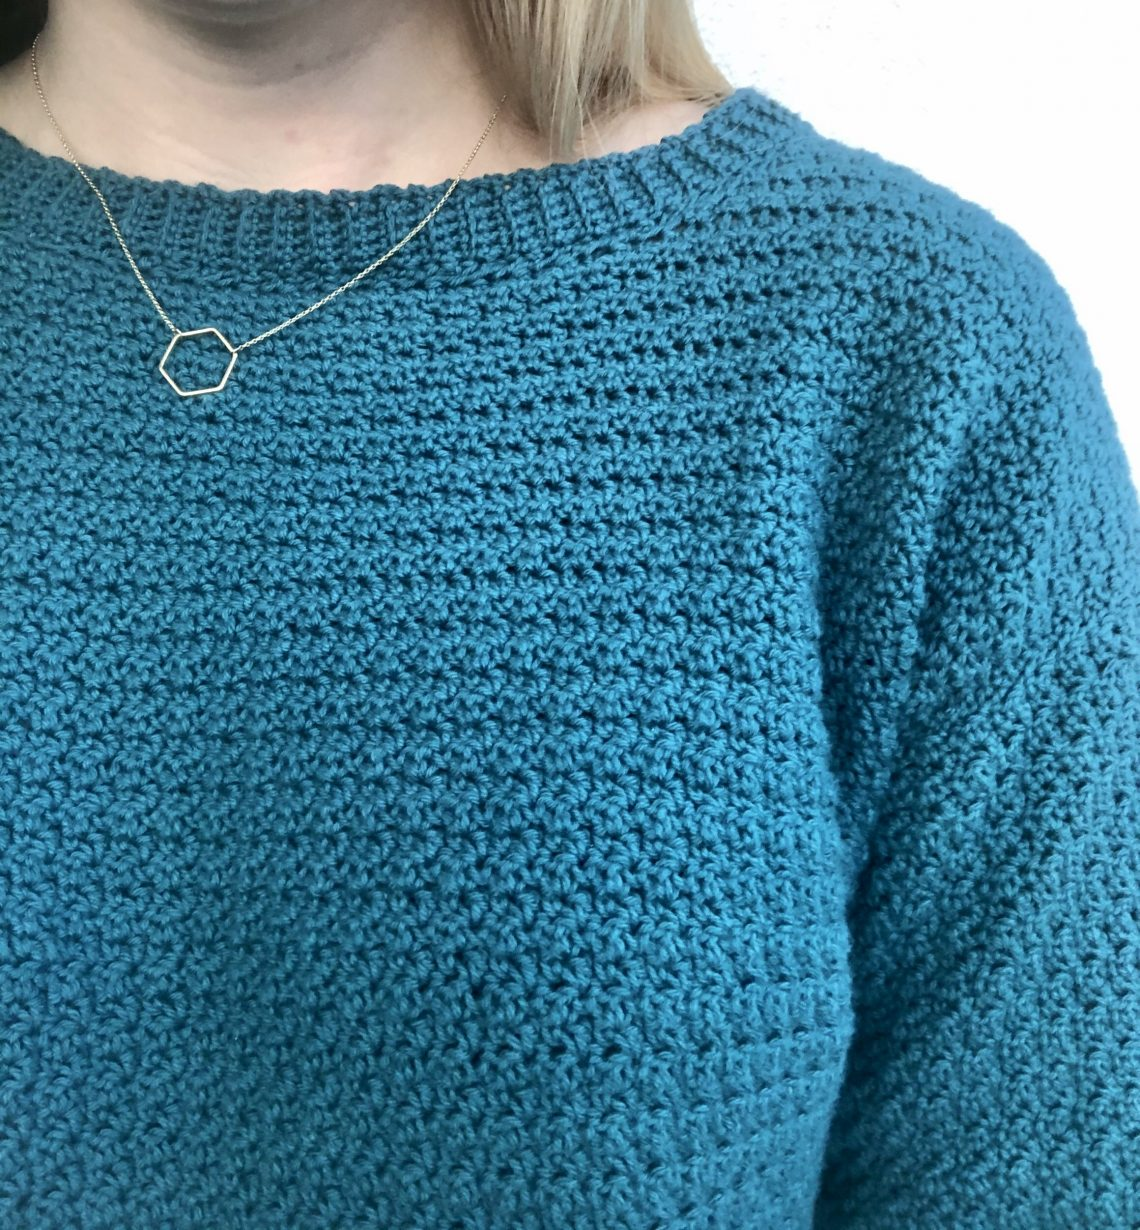 Tips and Tricks for Crocheting Your Own Sweater